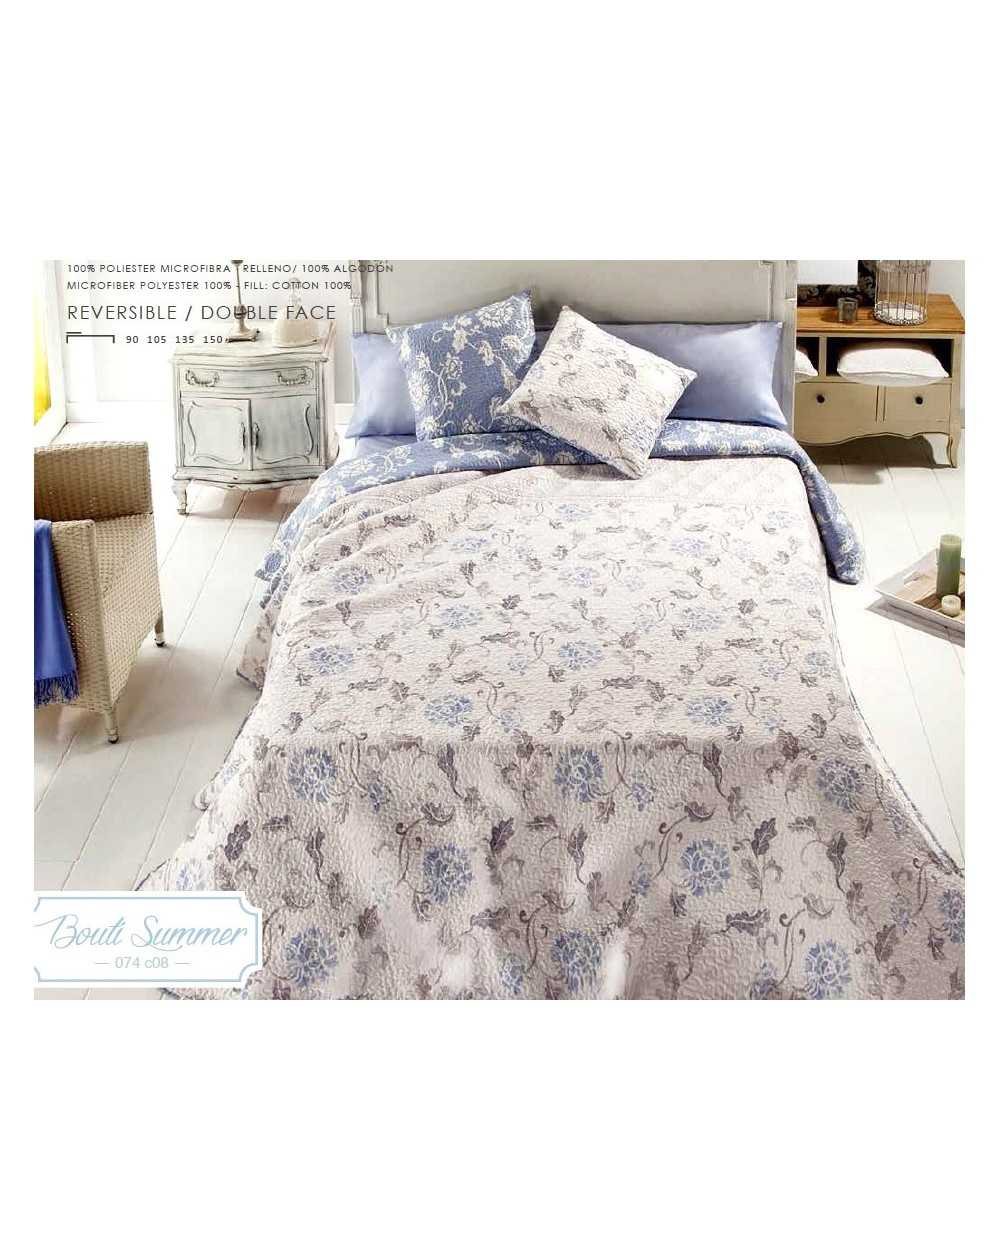 bedcover king size bed Bouti Summer Manterol